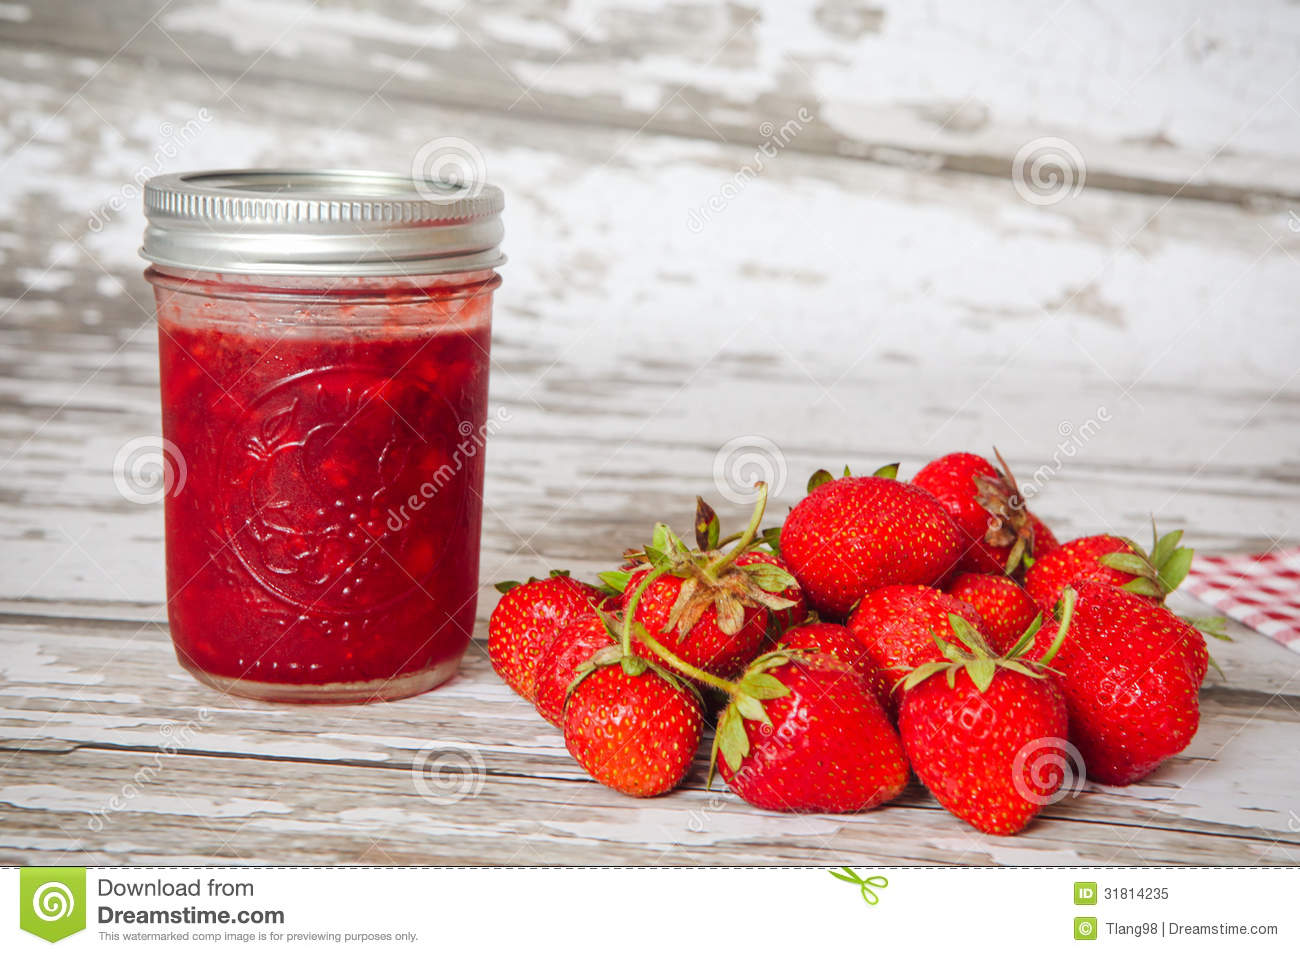 Homemade strawberry preserves and strawberries.